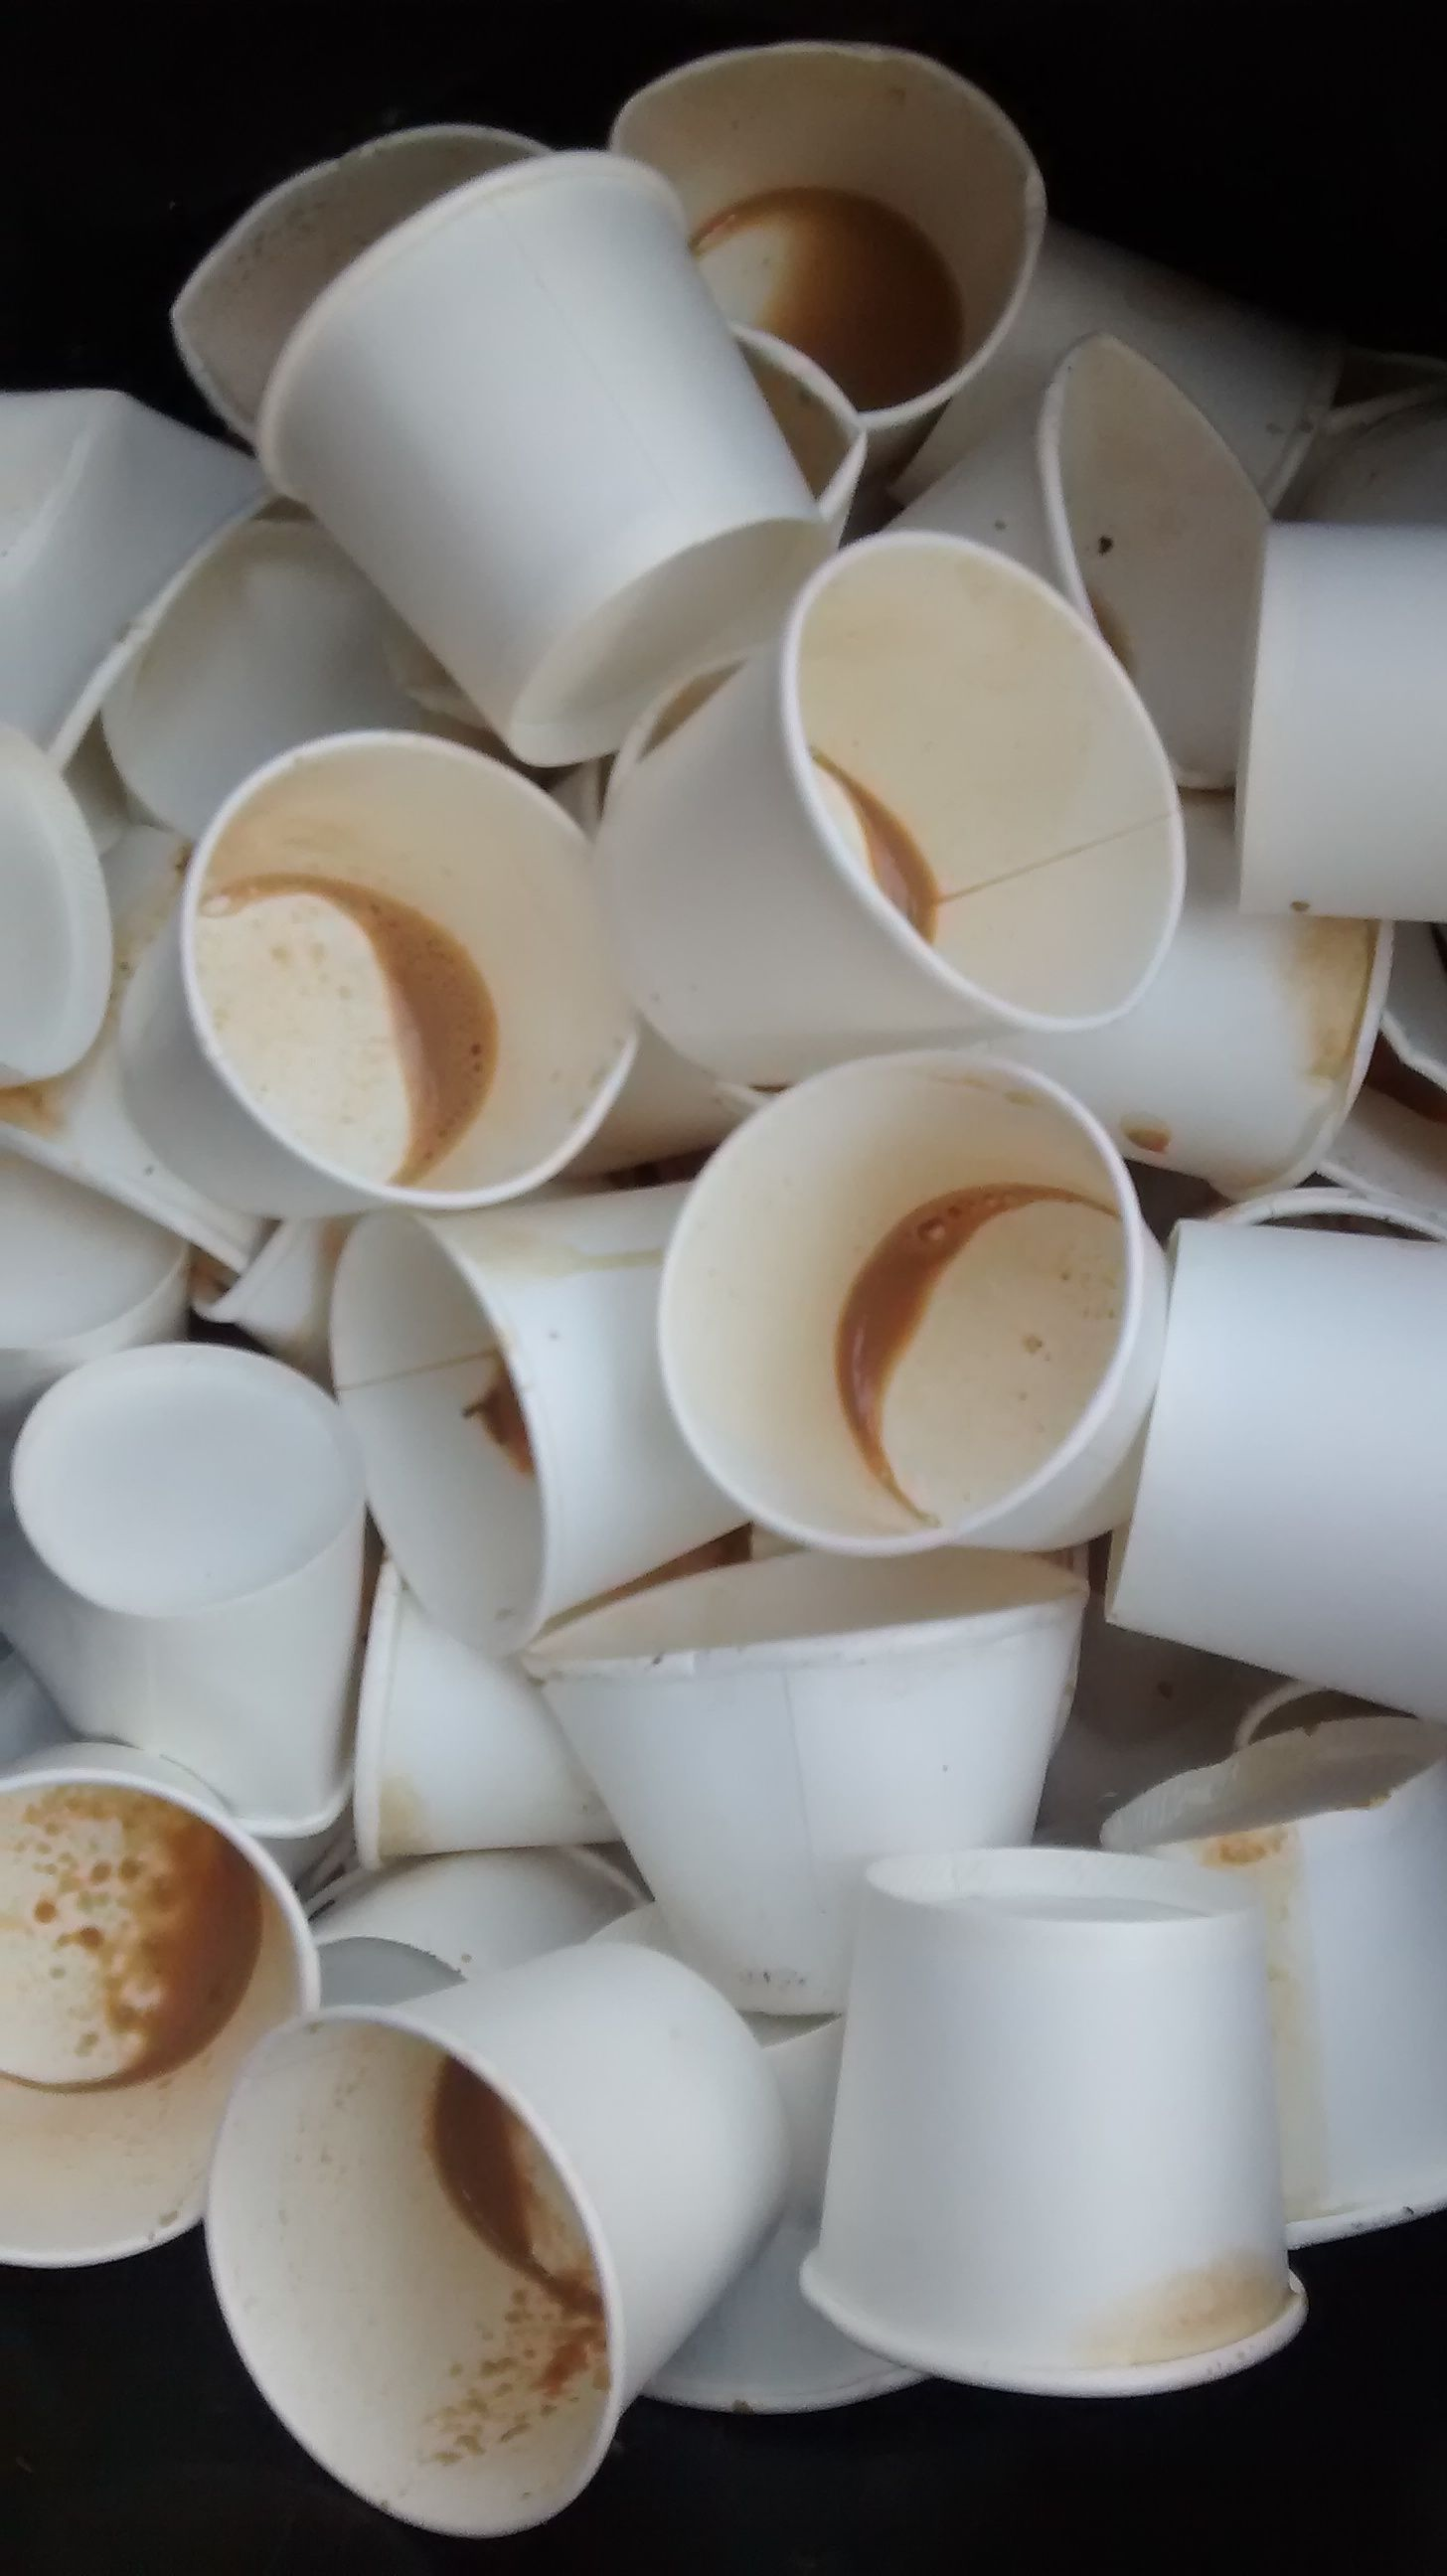 used cups in dustbin